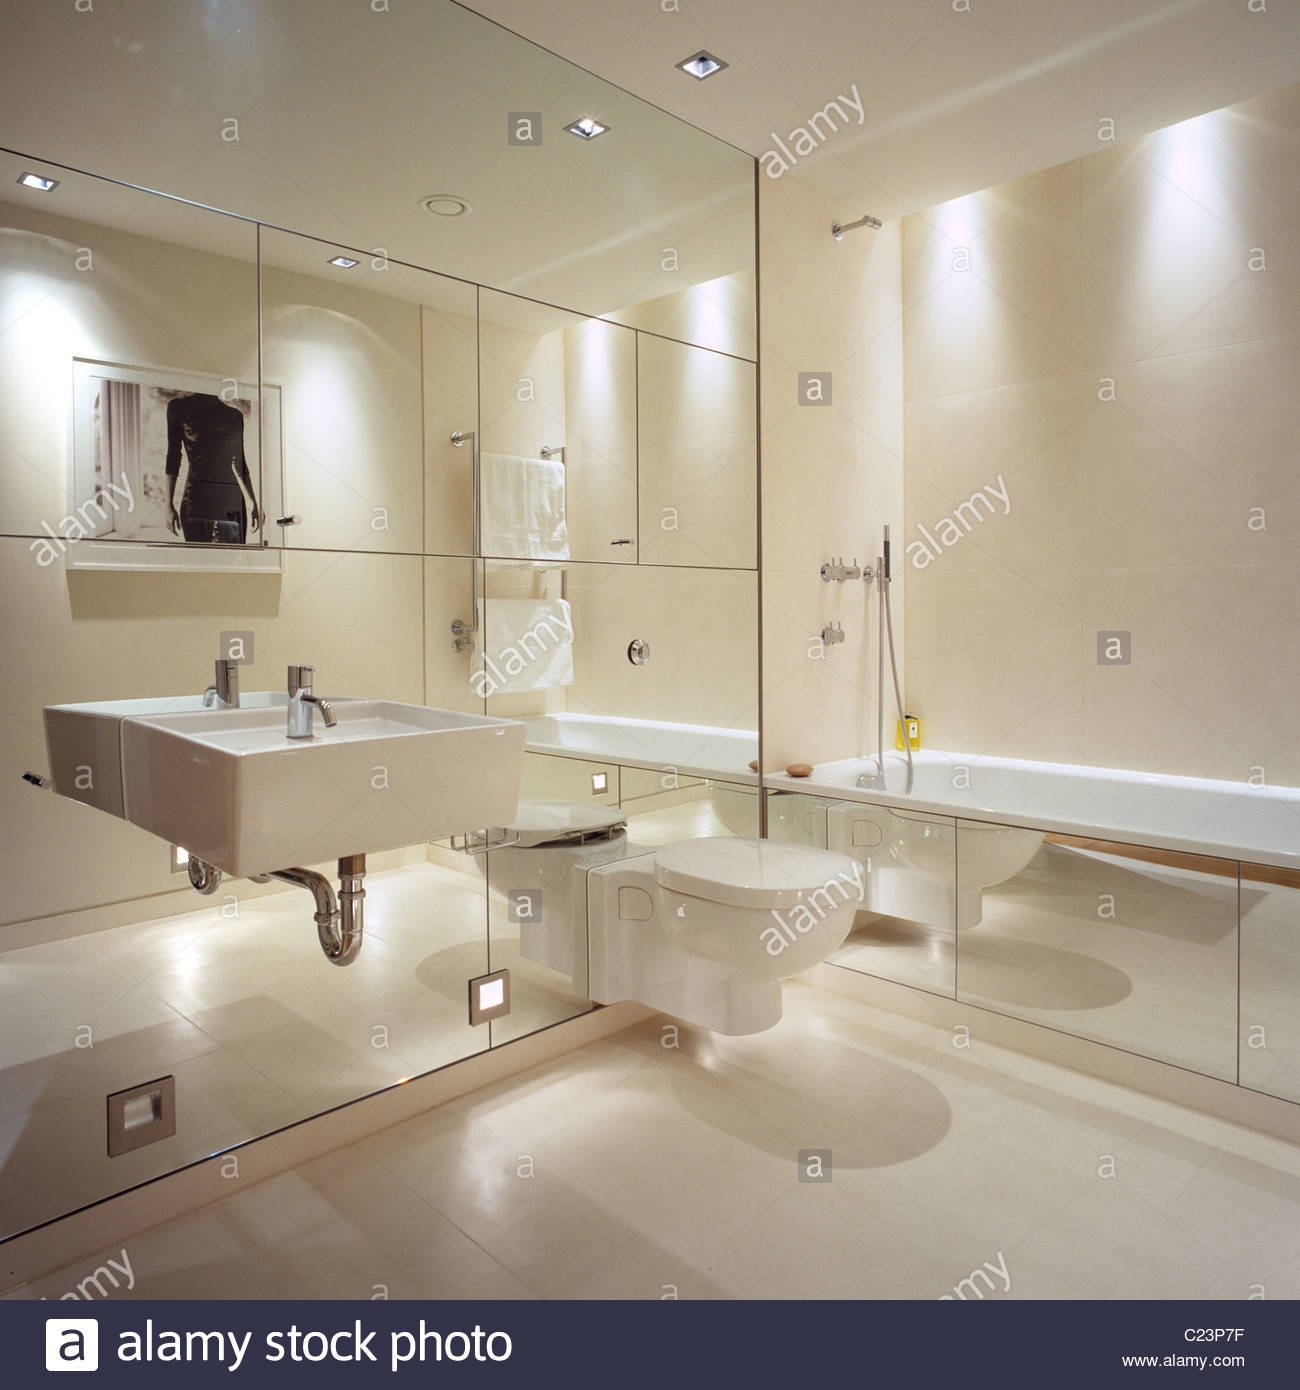 Bathroom With Mirrored Walls